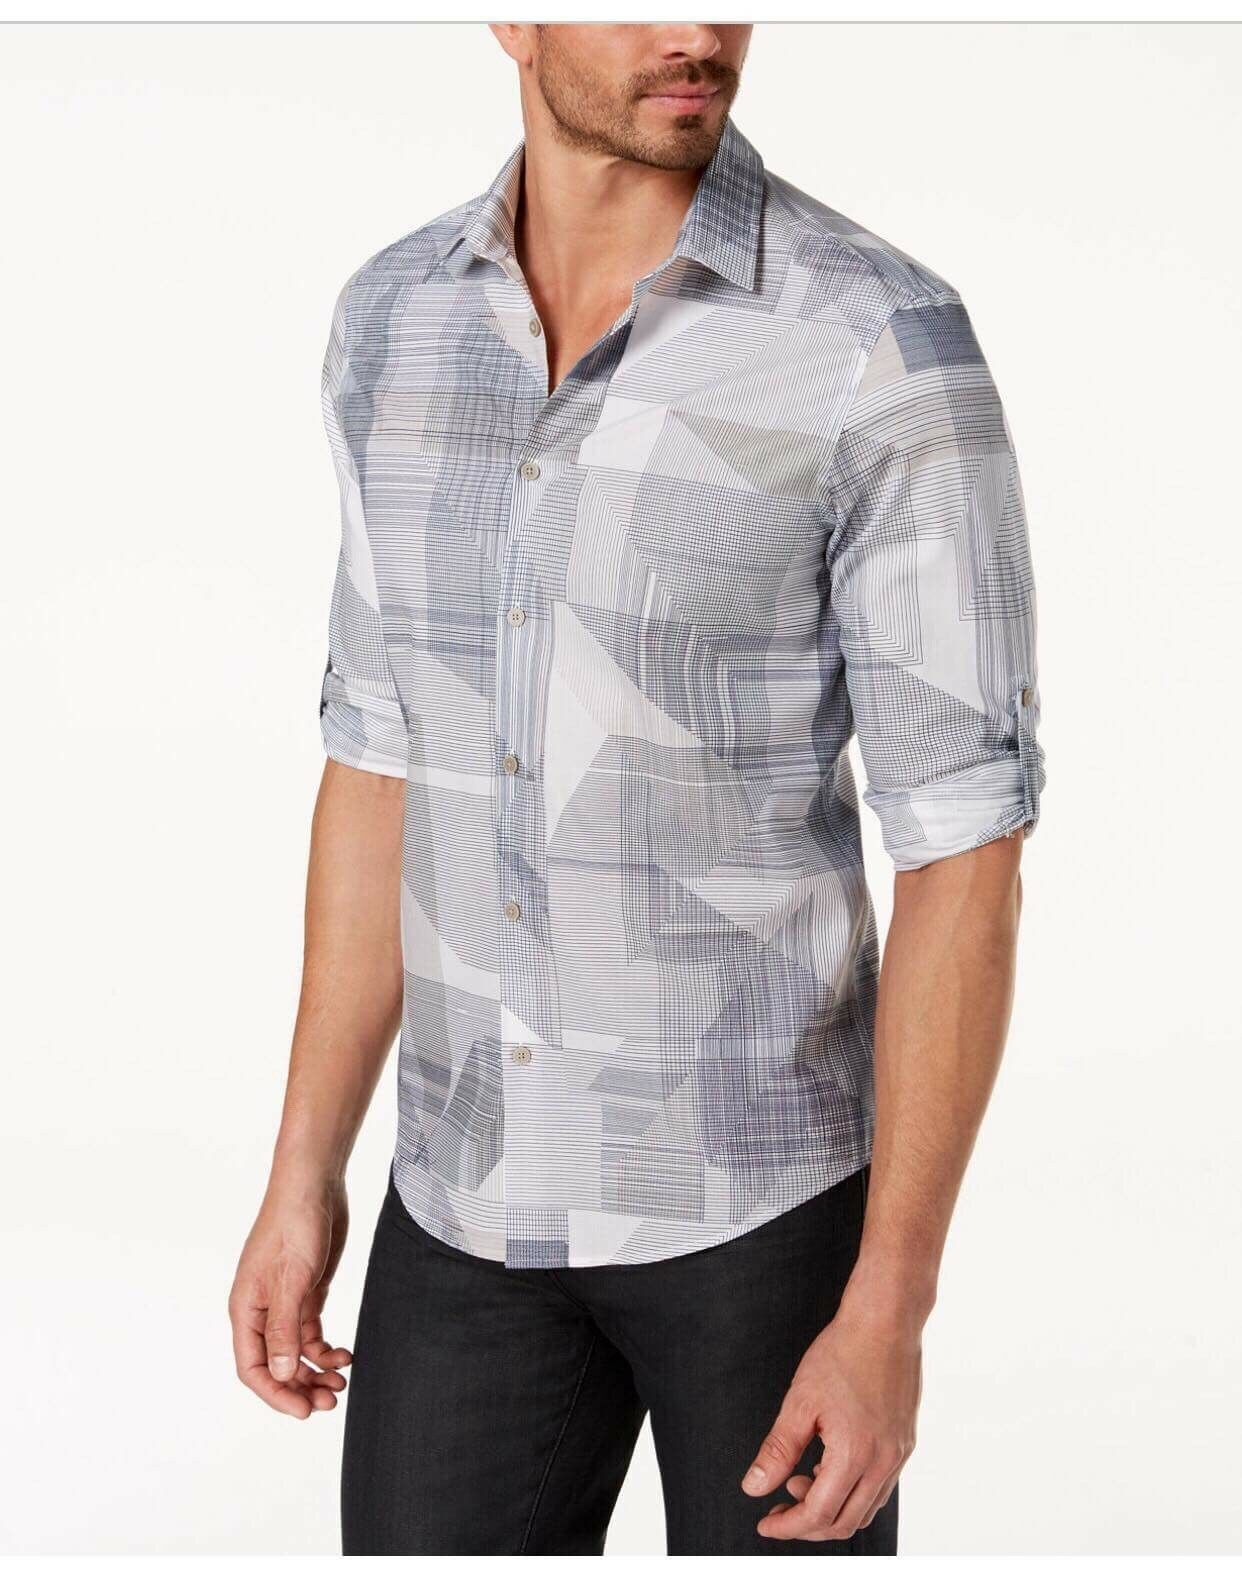 Alfani Men's Cross-Print Casual Button-Down Shirts Size  M